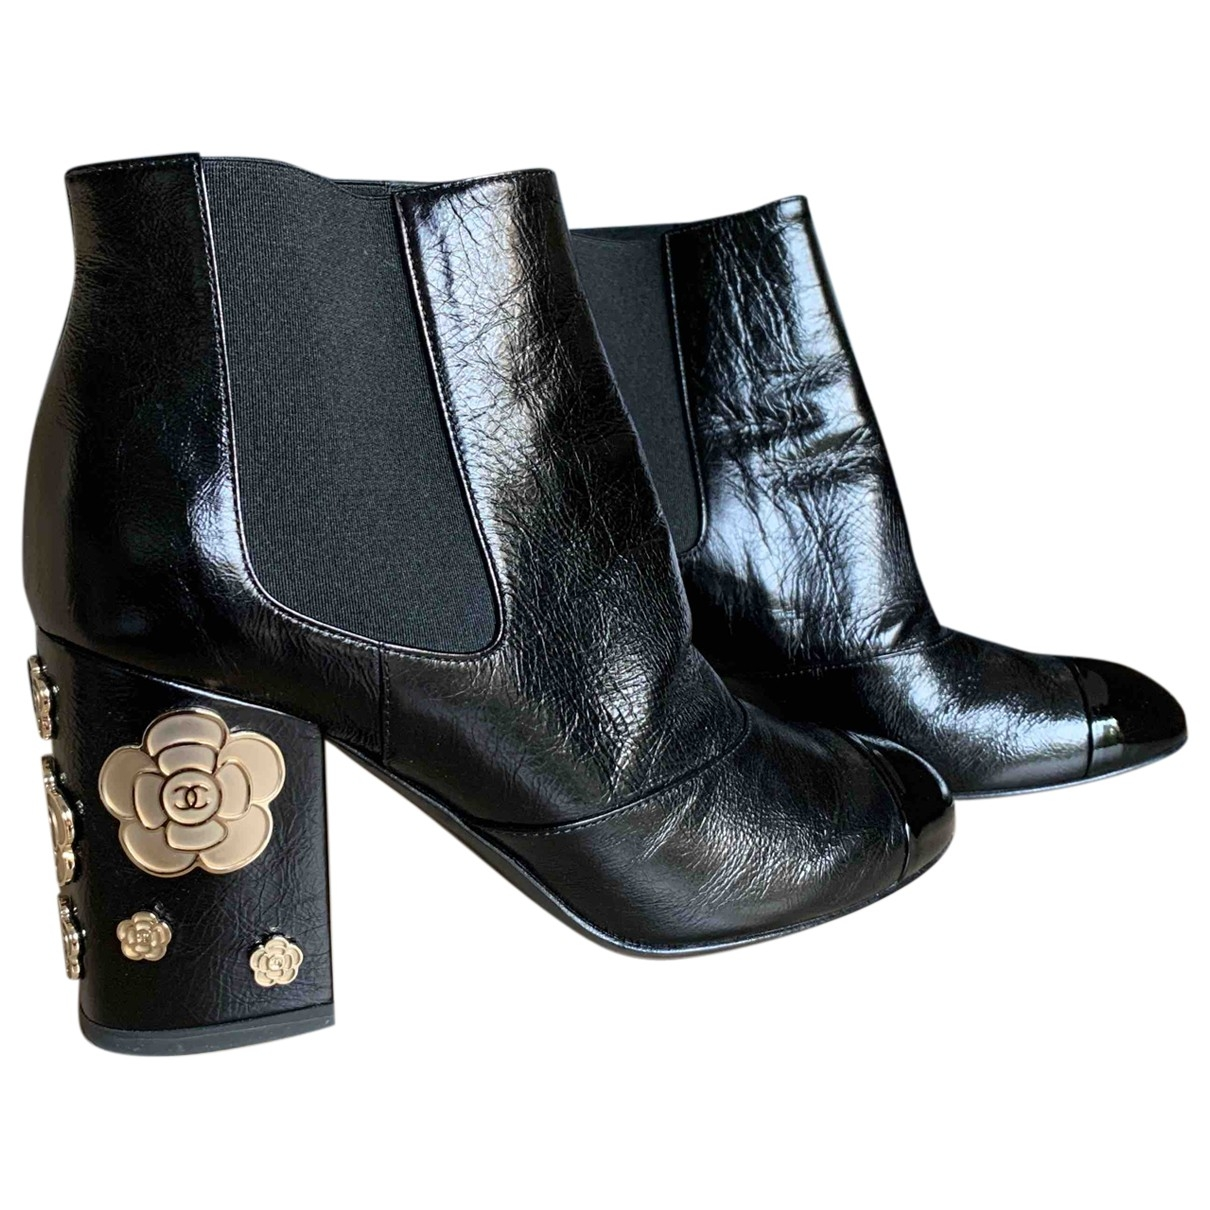 Chanel \N Black Patent leather Ankle boots for Women 37 EU